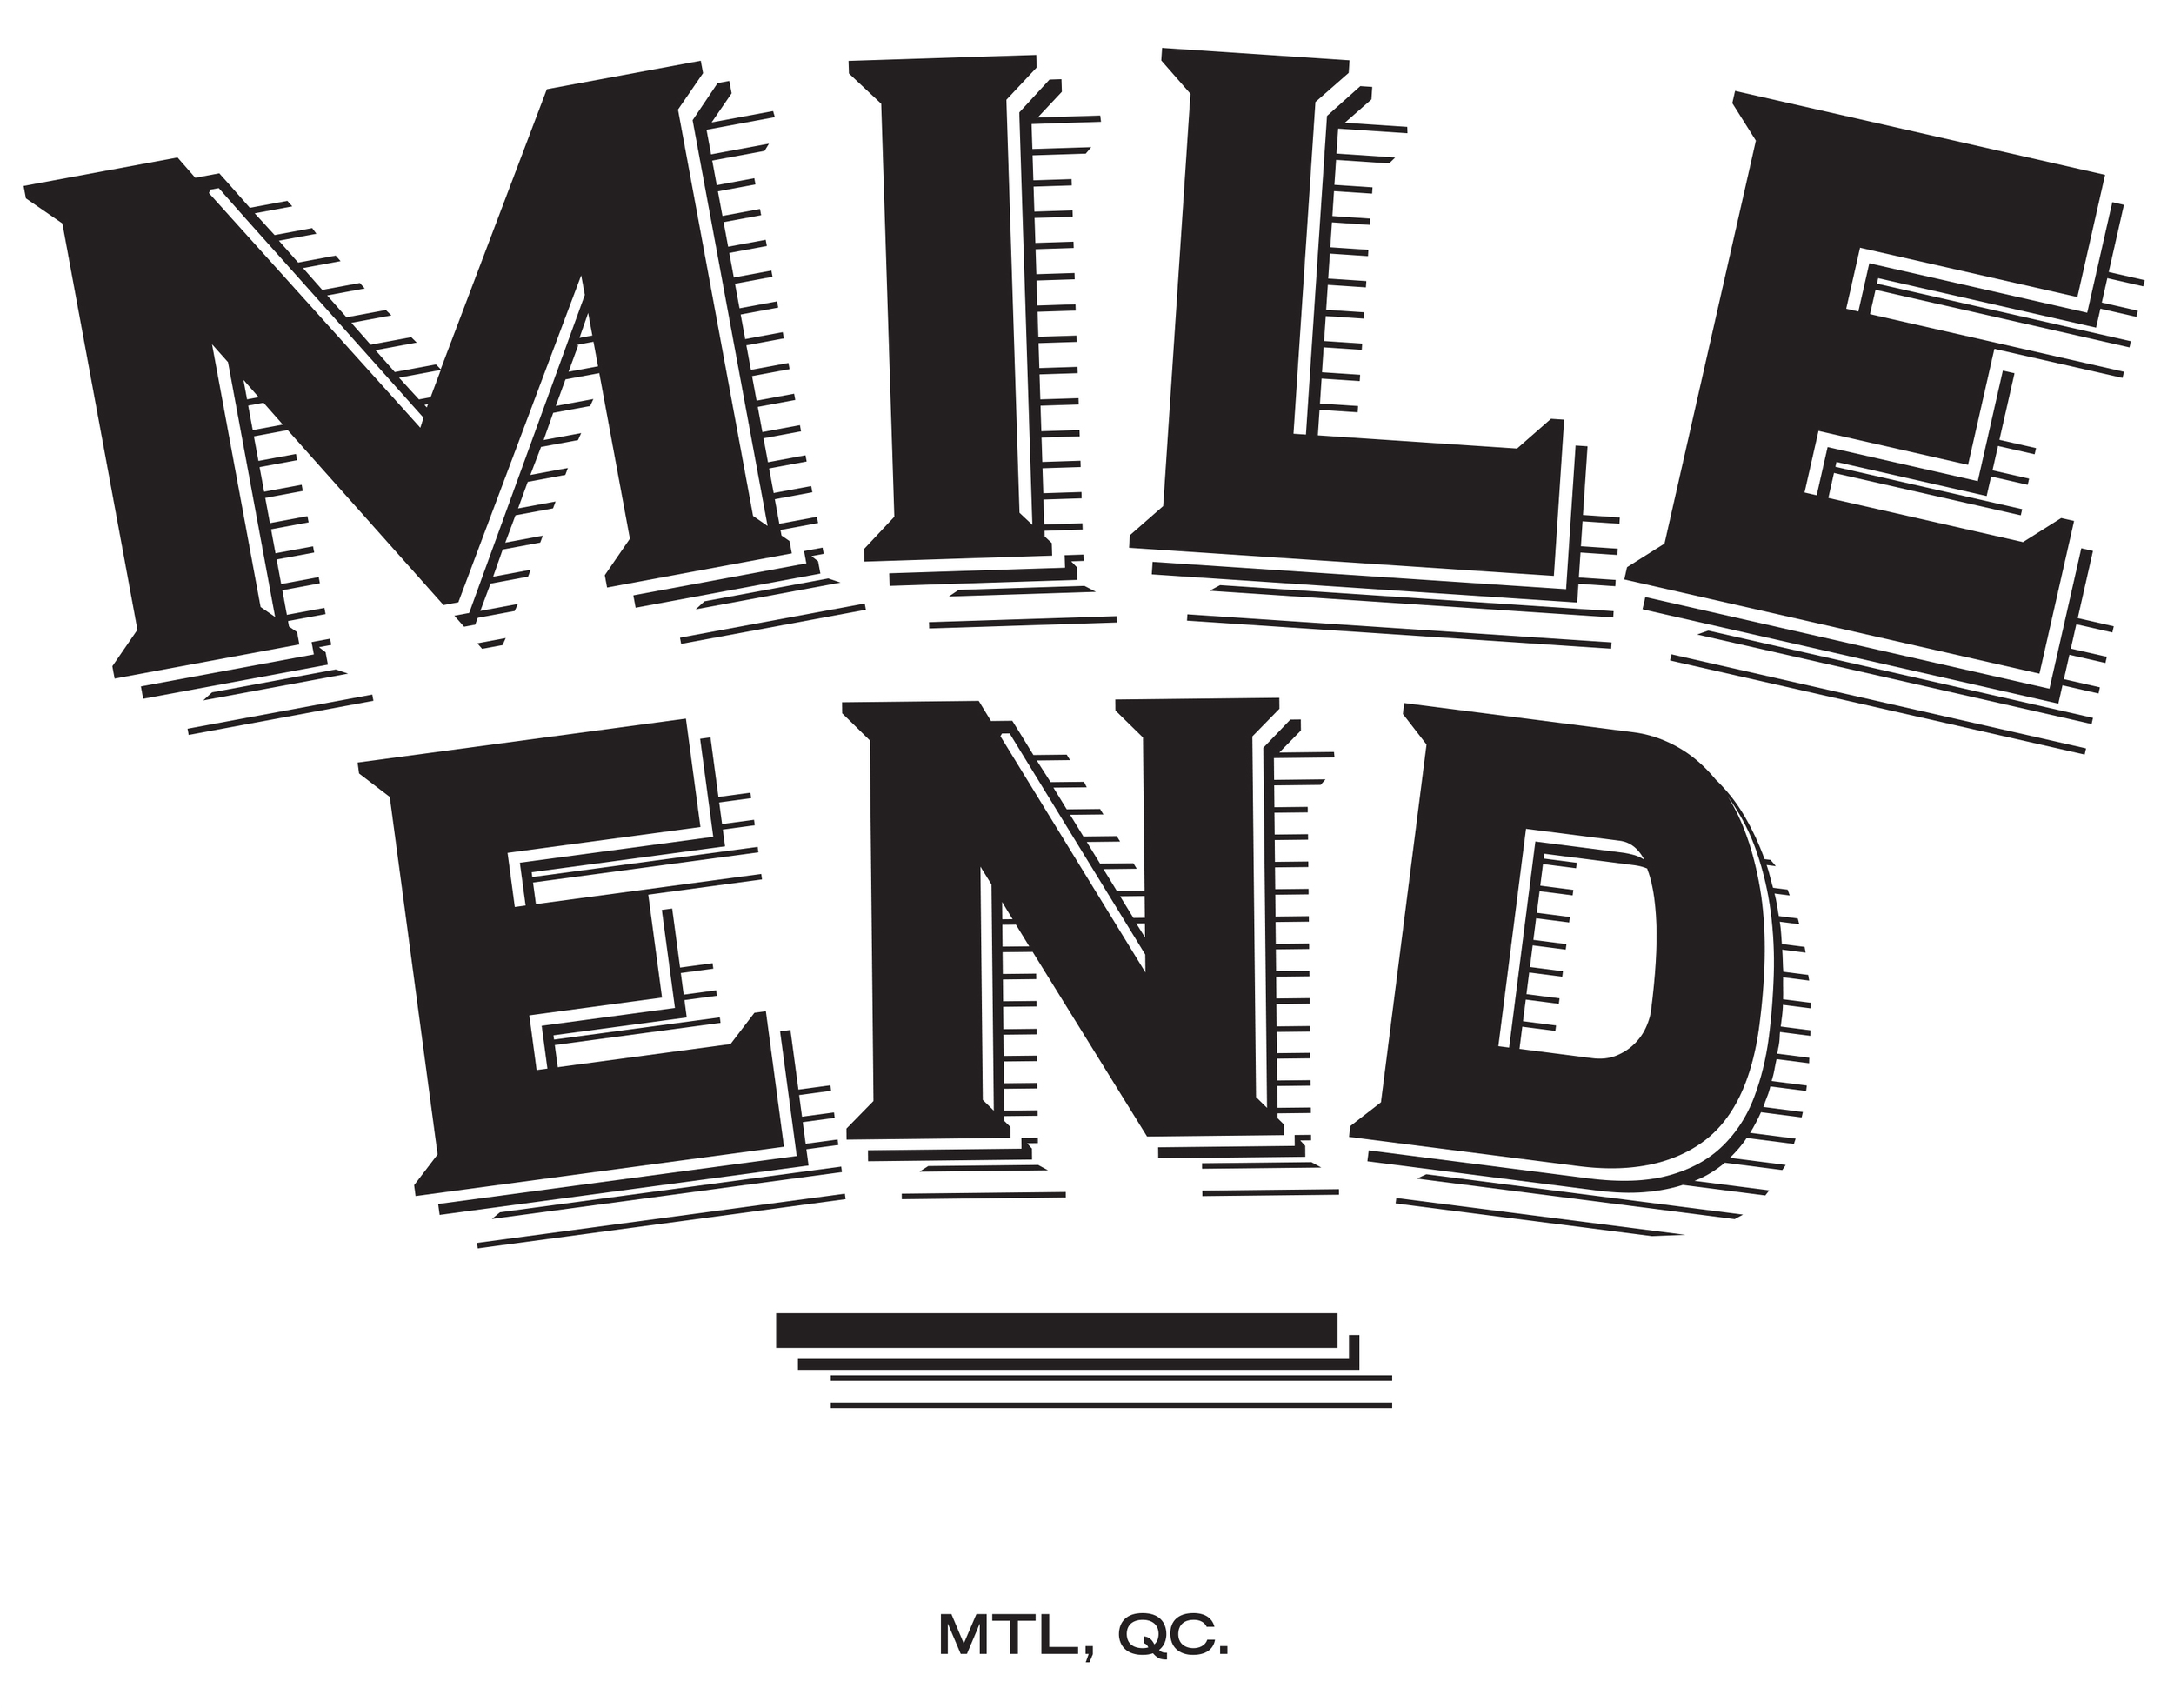 OTH_CCN - MILE END - PRINT FILE